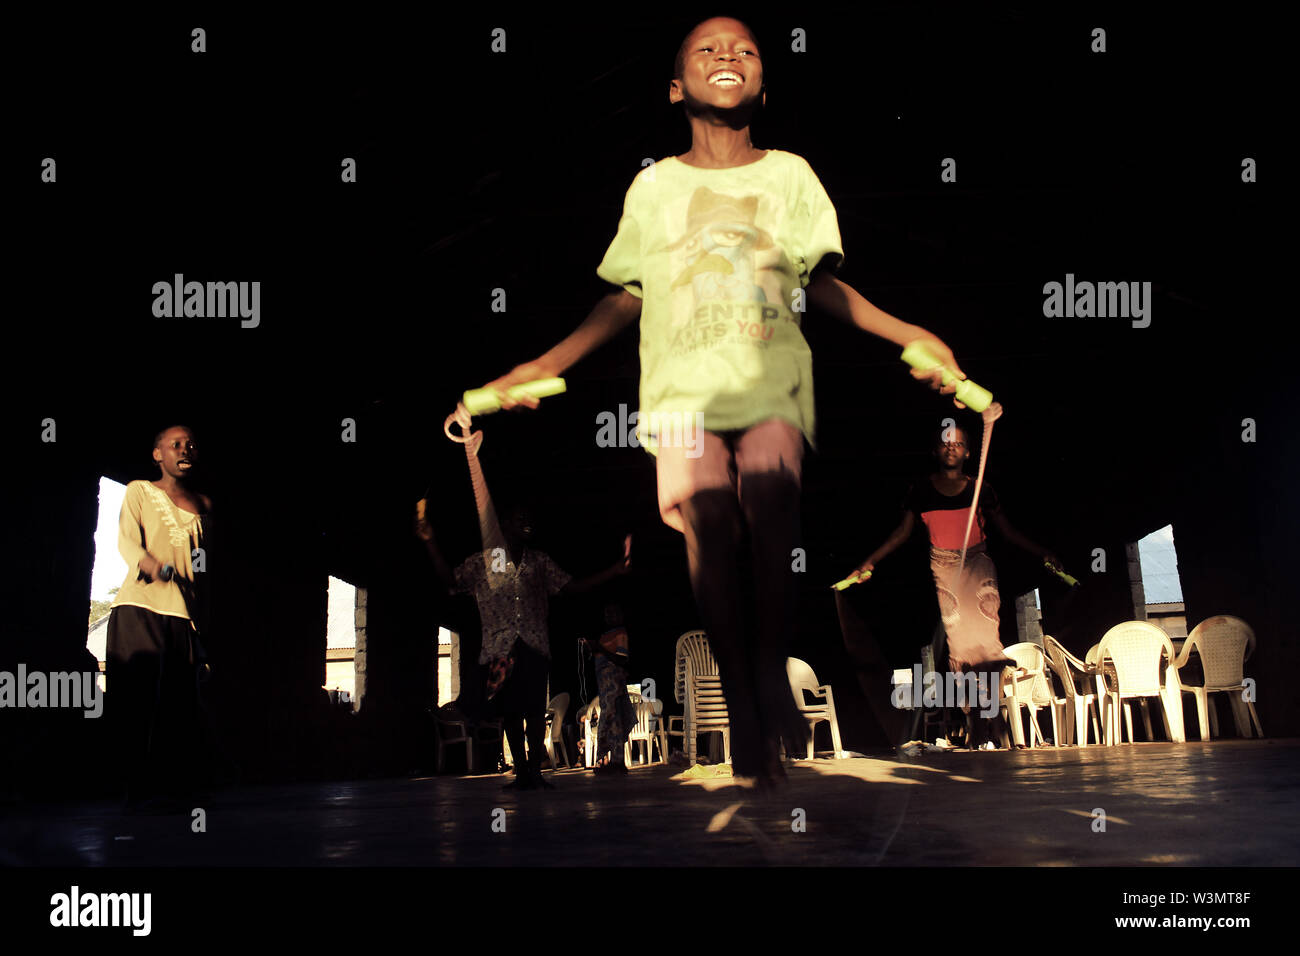 Children participate in skipping at the Deeper Life Camp Ground, where locally organized formal education was eventually stopped due to low turn-out of children of displaced persons. Many children of IDPs prefer psycho-social activities to formal education. - Stock Image